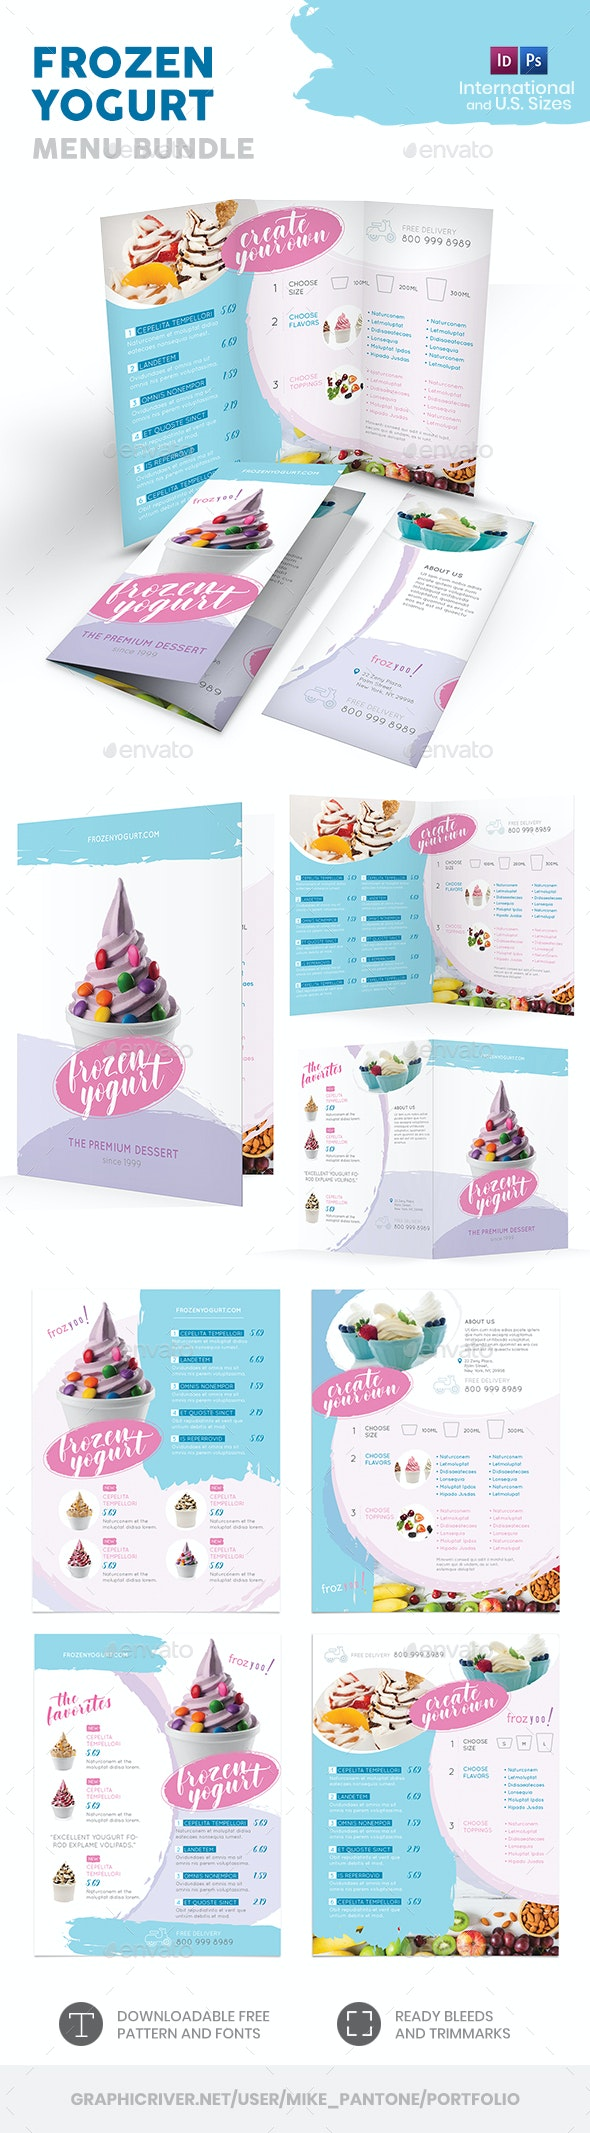 Frozen Yogurt Menu Print Bundle - Food Menus Print Templates